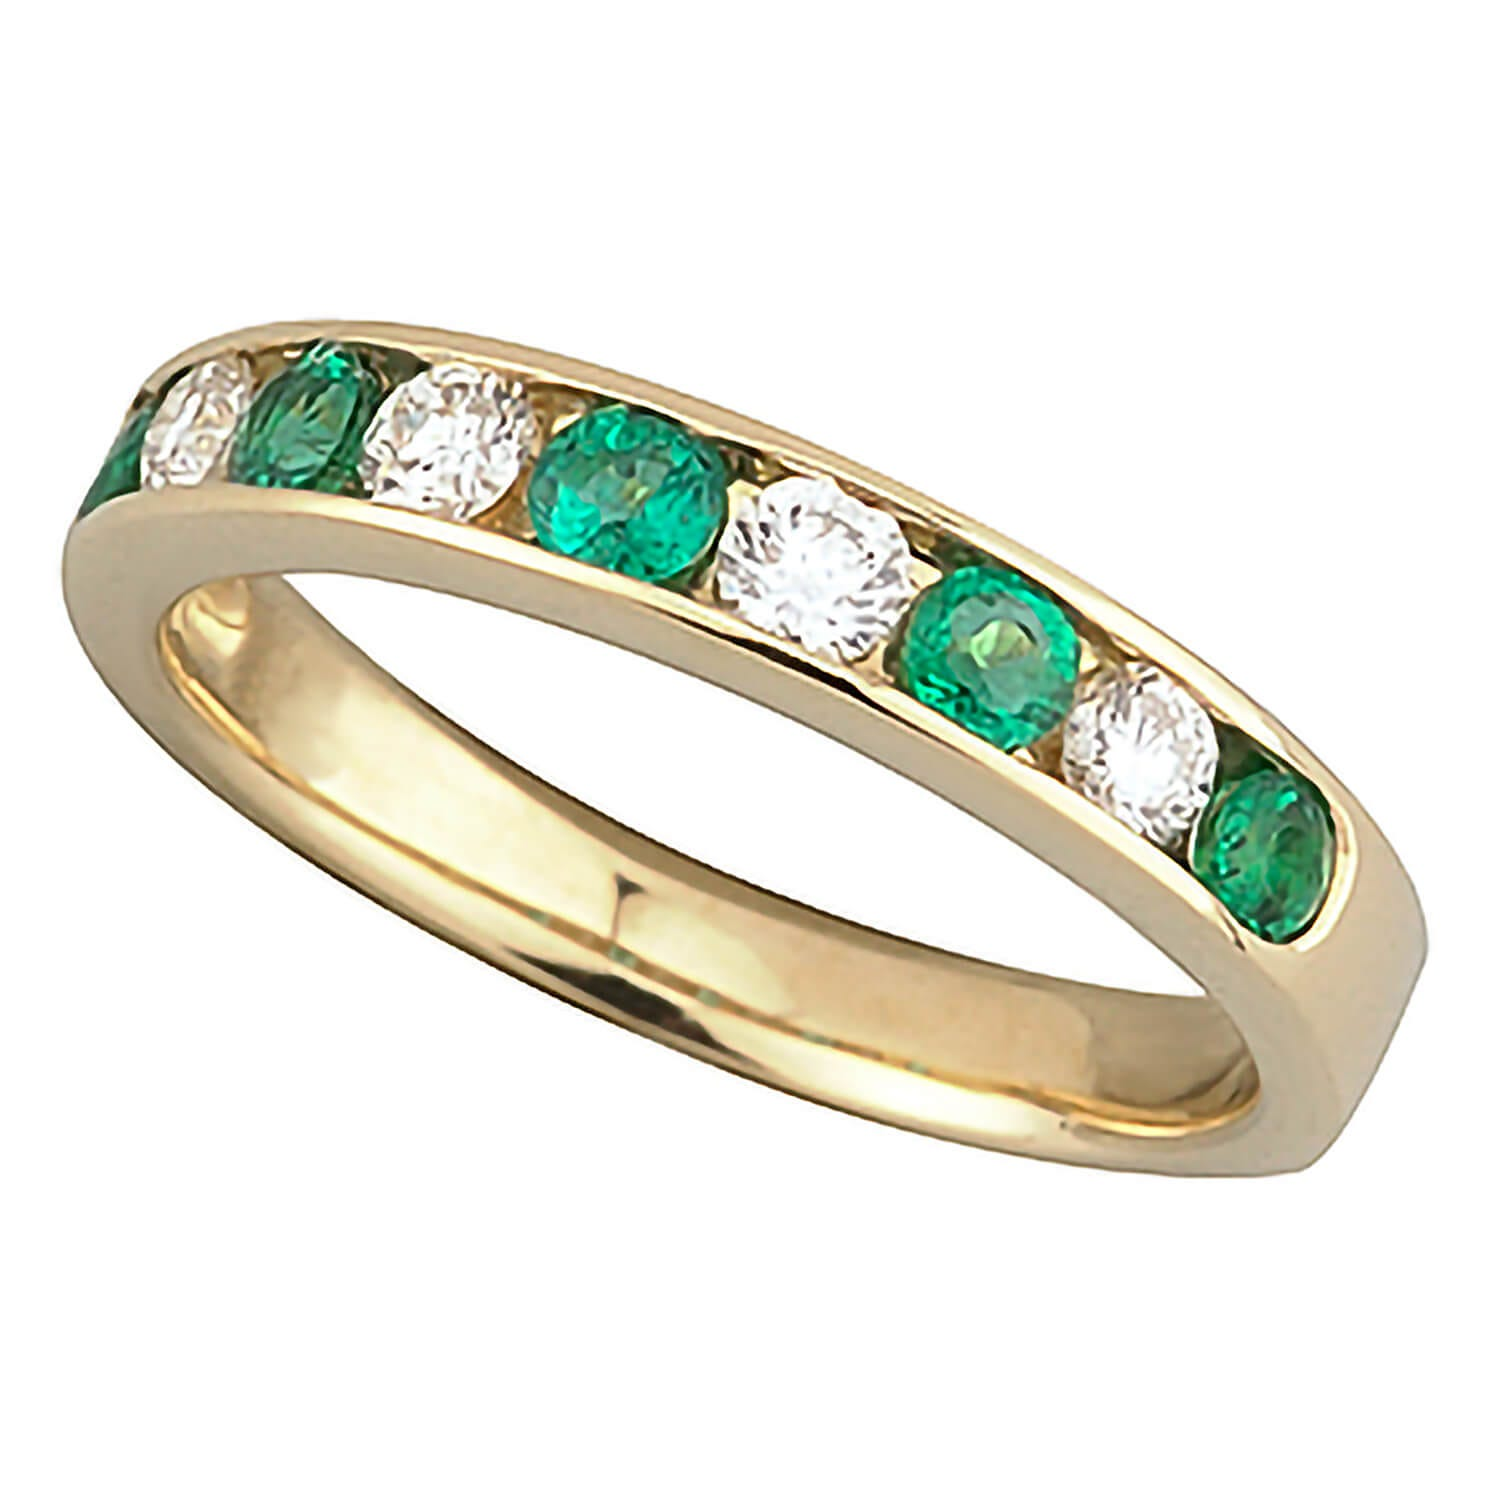 18ct gold emerald and diamond nine stone ring